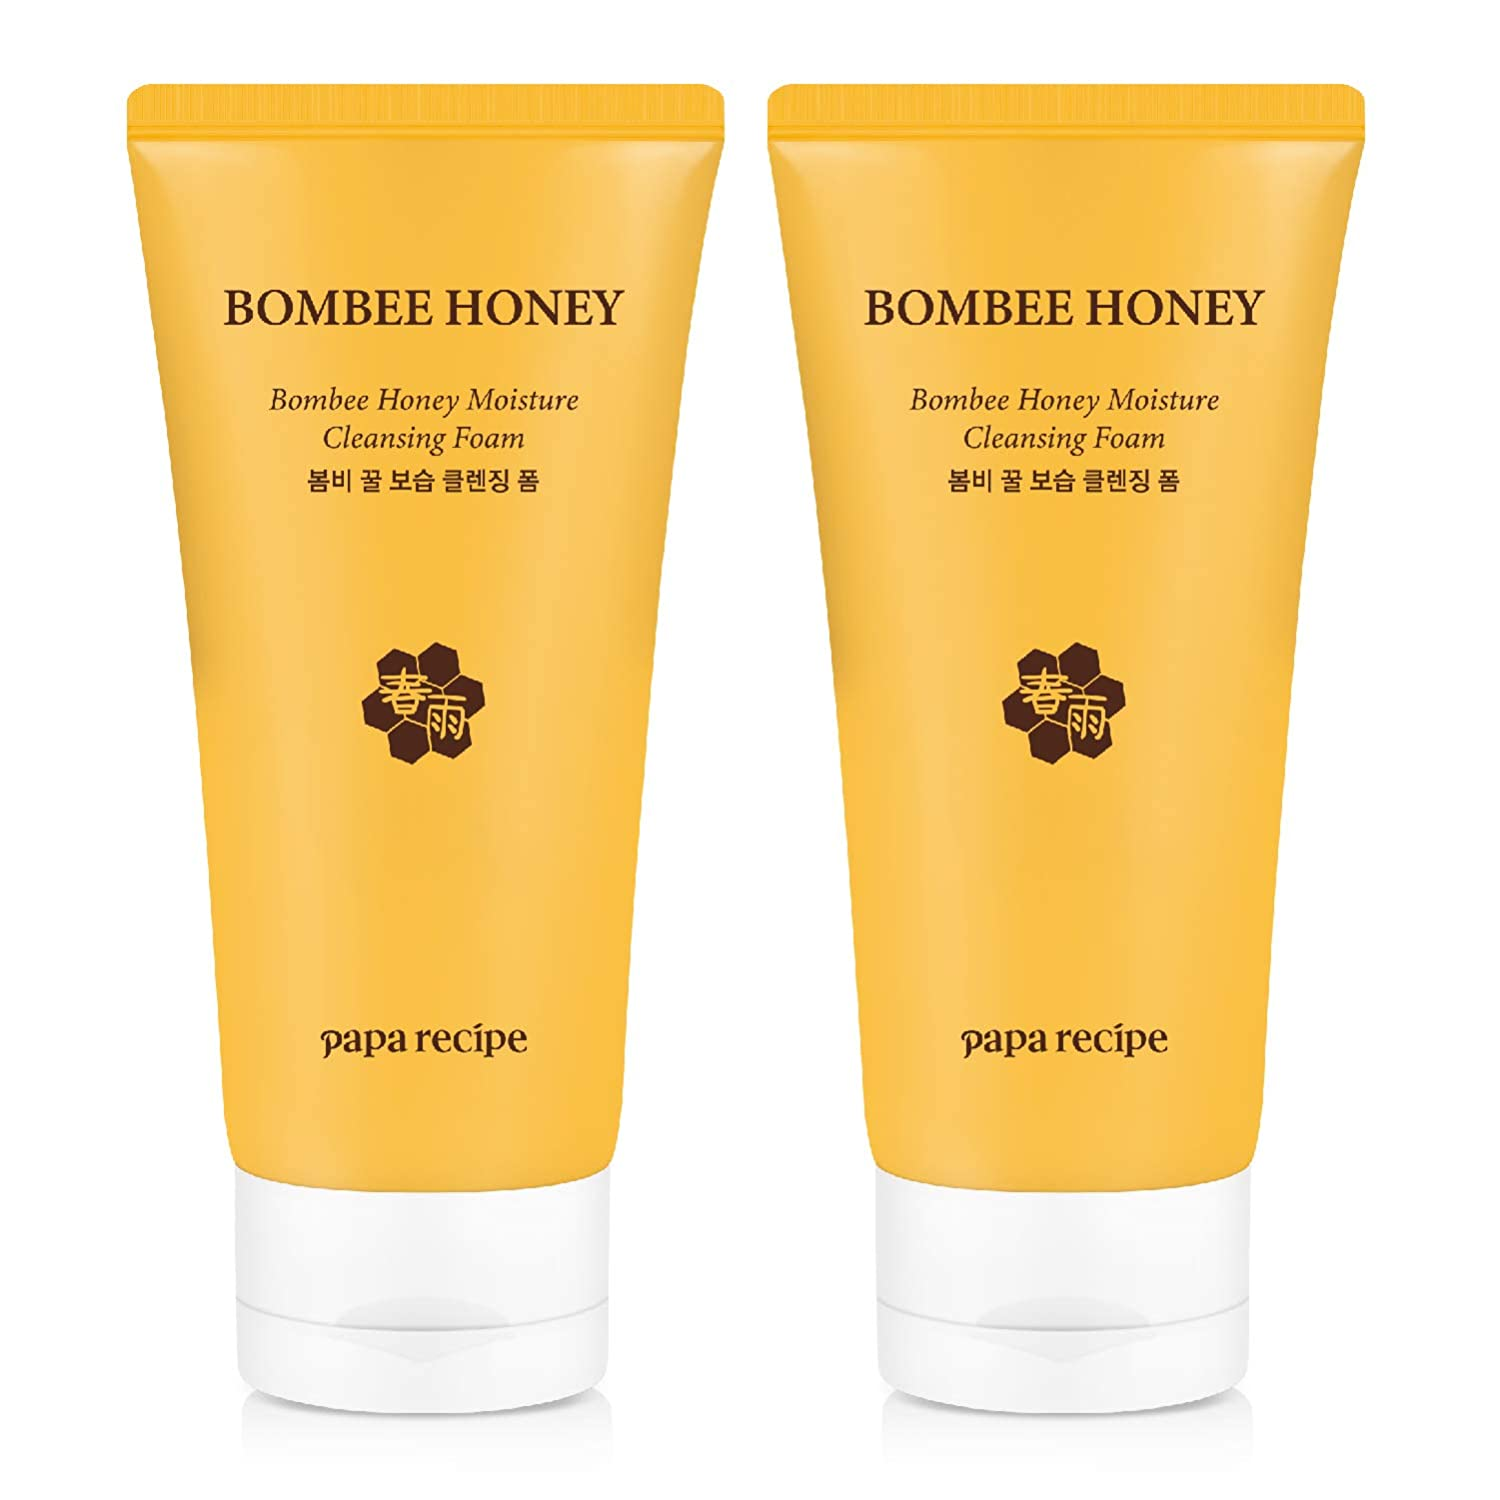 Papa Recipe Bombee Honey Moisture Cleansing Foam Pack of 2 , Korean Skin Care, Moisturizing Face Wash, 8.10 Ounce